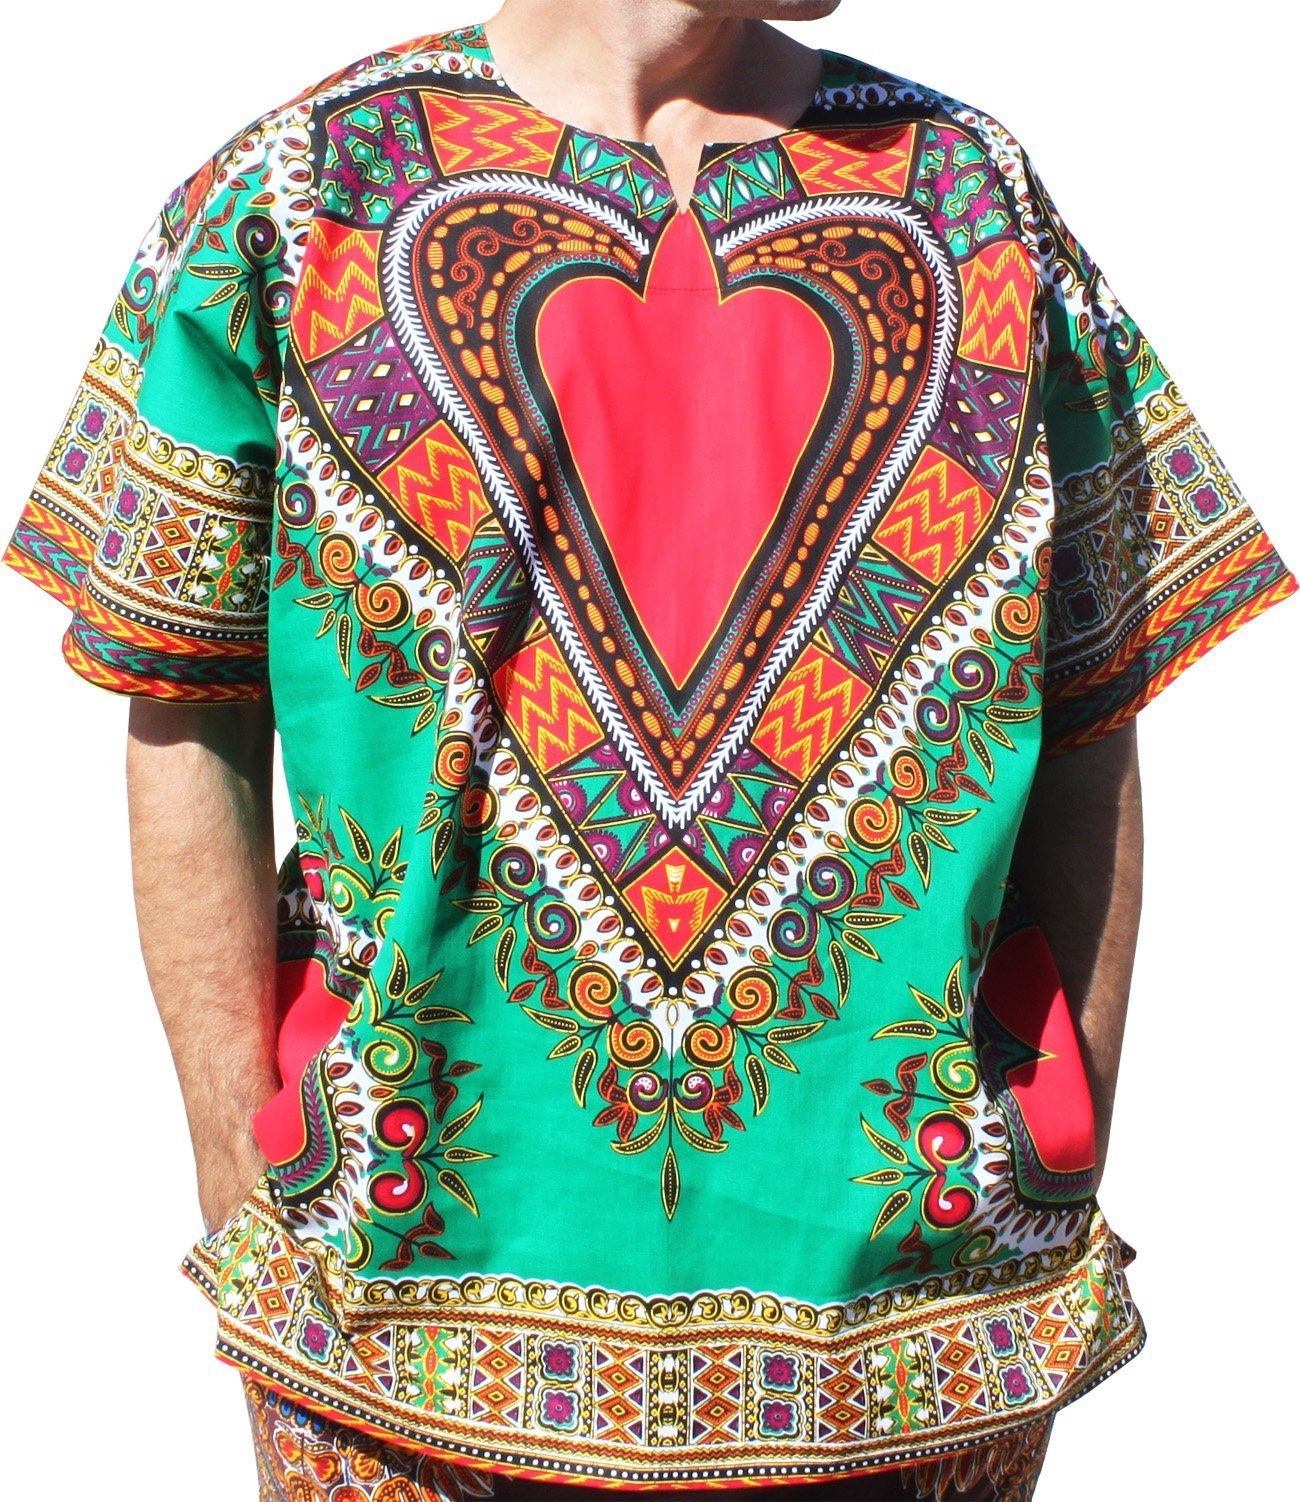 RaanPahMuang Bright Heart Cotton Africa Dashiki Plus Sized Shirt Plain Front, XXXXXX-Large, Green by RaanPahMuang